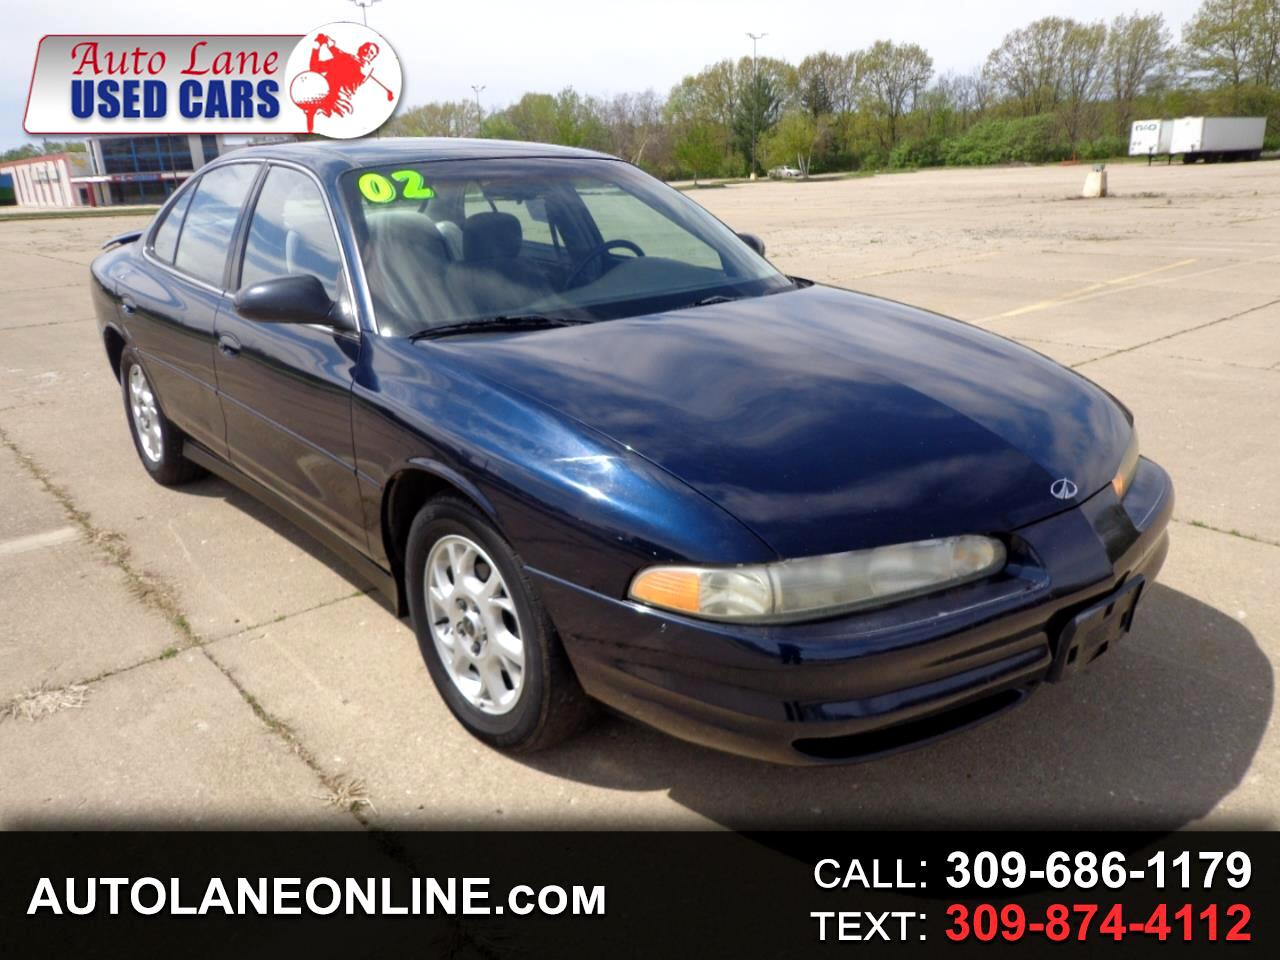 Oldsmobile Intrigue 4dr Sdn GX 2002